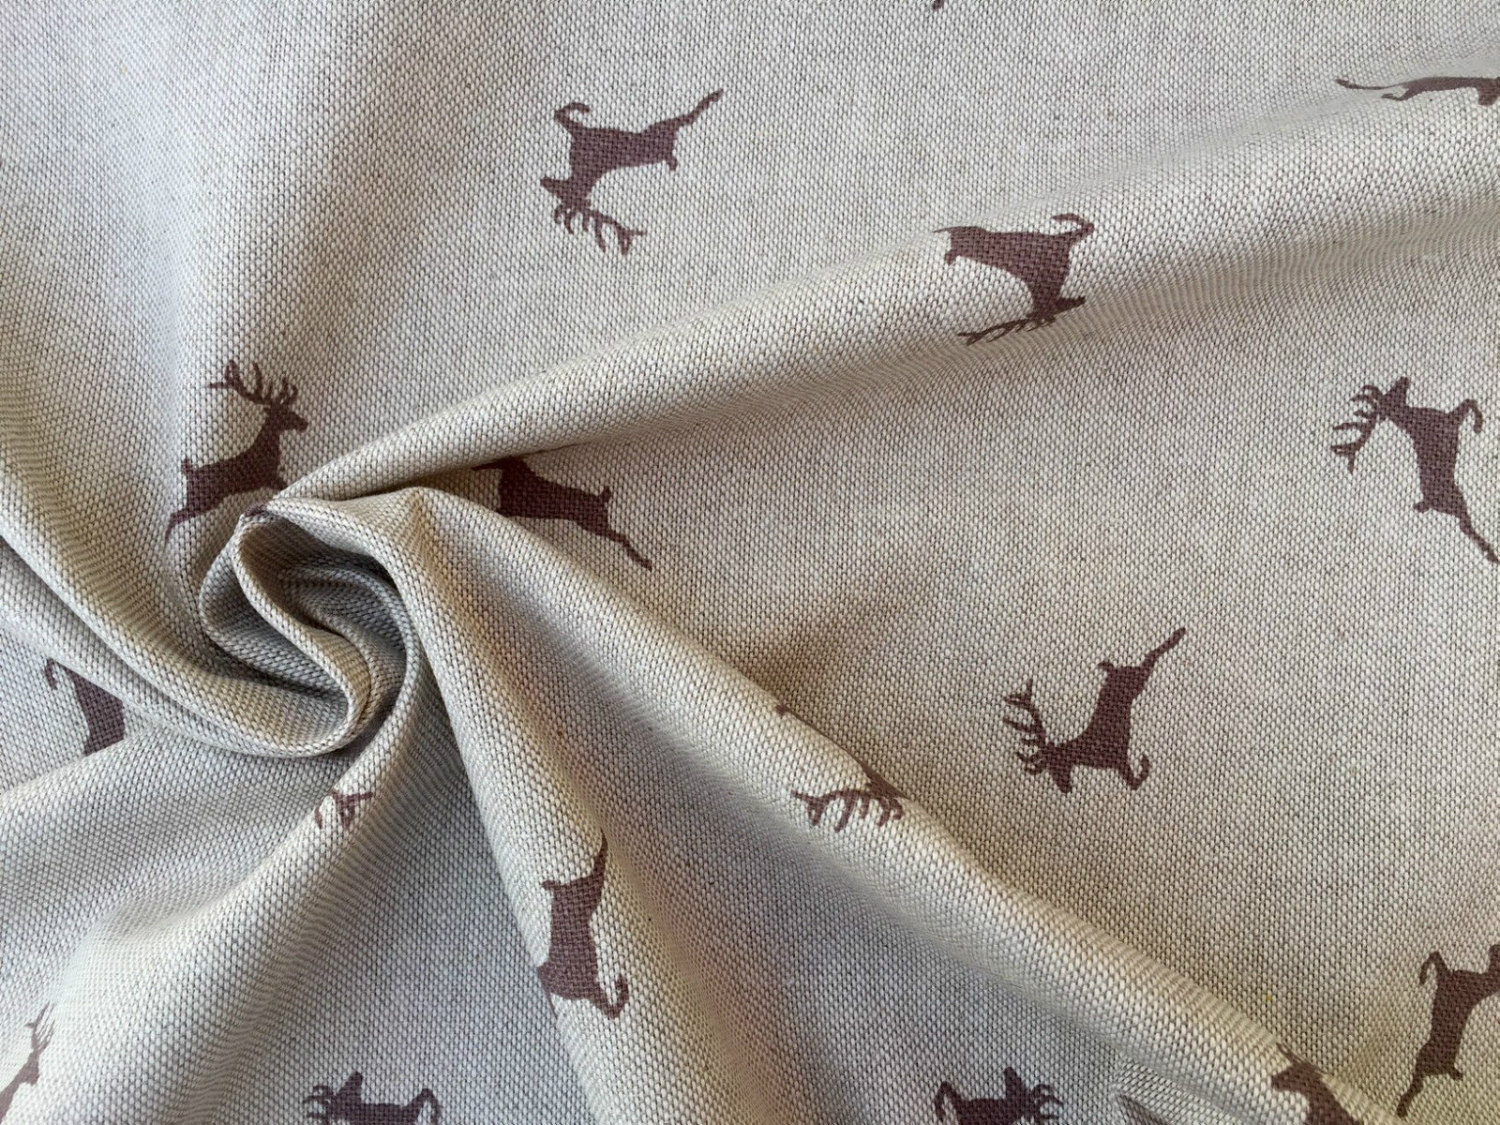 deer-fabric-curtain-upholstery-cotton-material-christmas-moose-elk-print-textile-55-wide-sold-by-the-meter-brown-natural-canvas-594bf4851.jpg